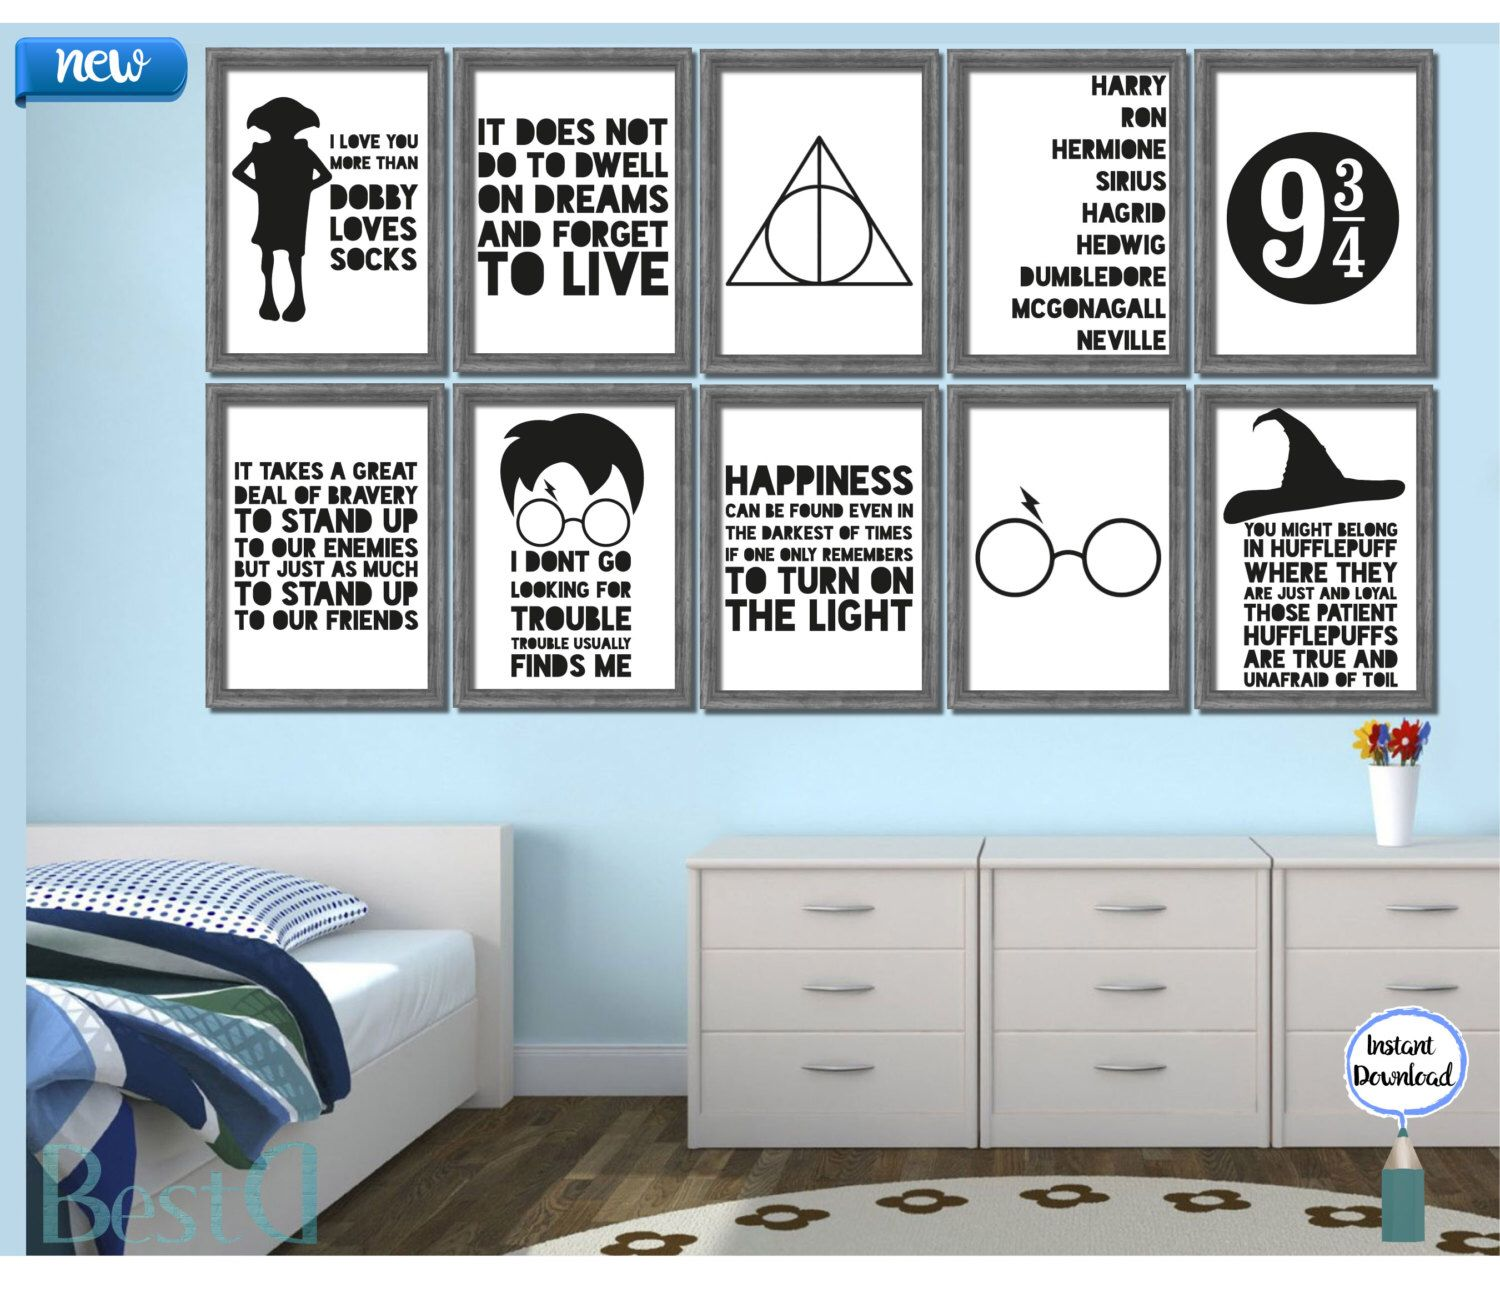 Harry Potter quotes set of 10 printable,Harry Potter inspirational quote printable,boy kids room poster,Instant Download wall art boy poster by BestDesignland on Etsy https://www.etsy.com/listing/261642512/harry-potter-quotes-set-of-10